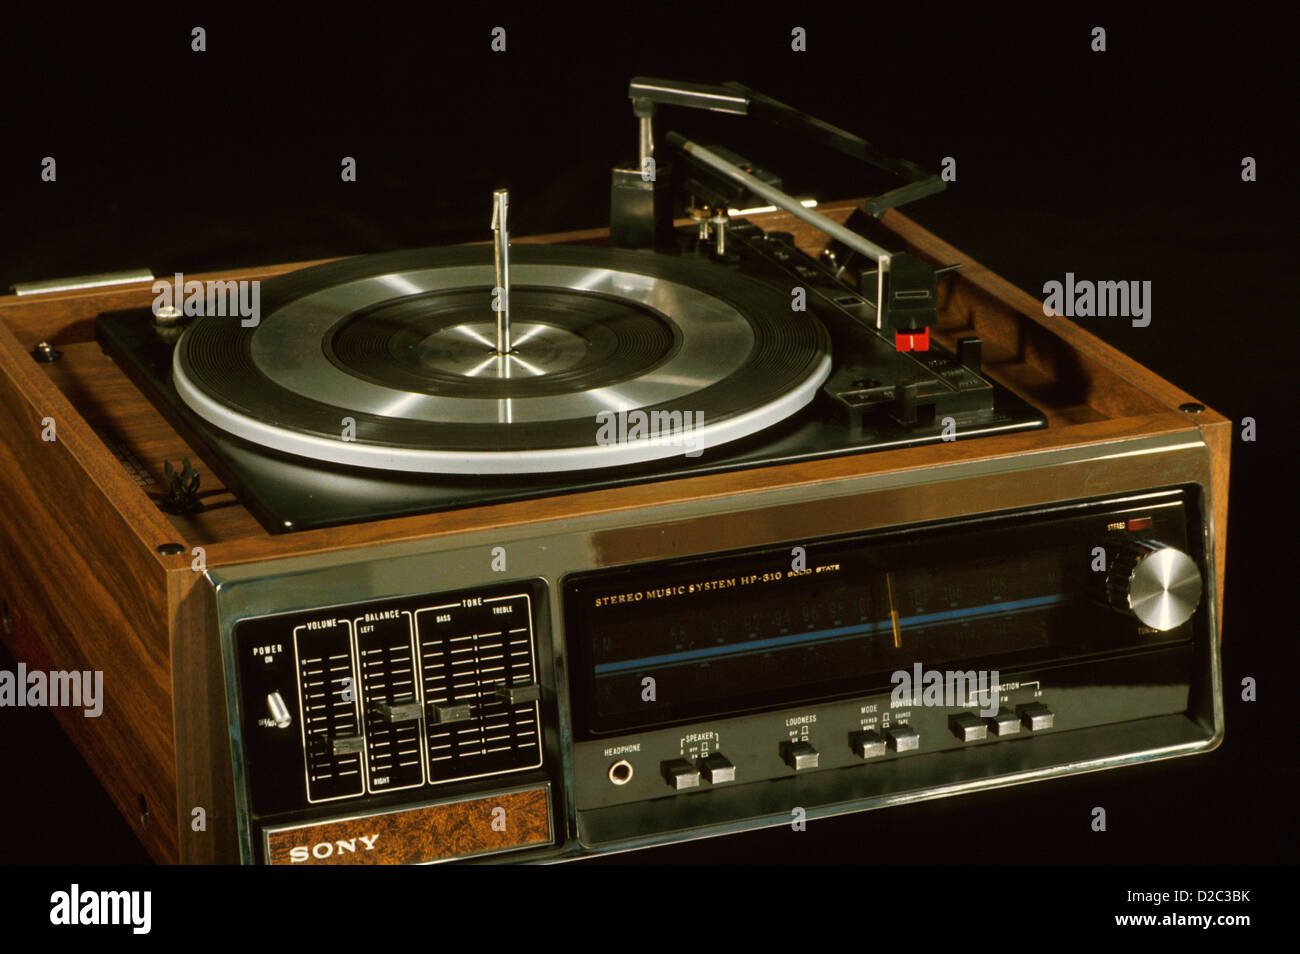 Sony Receiver And Turntable (1970S) - Stock Image